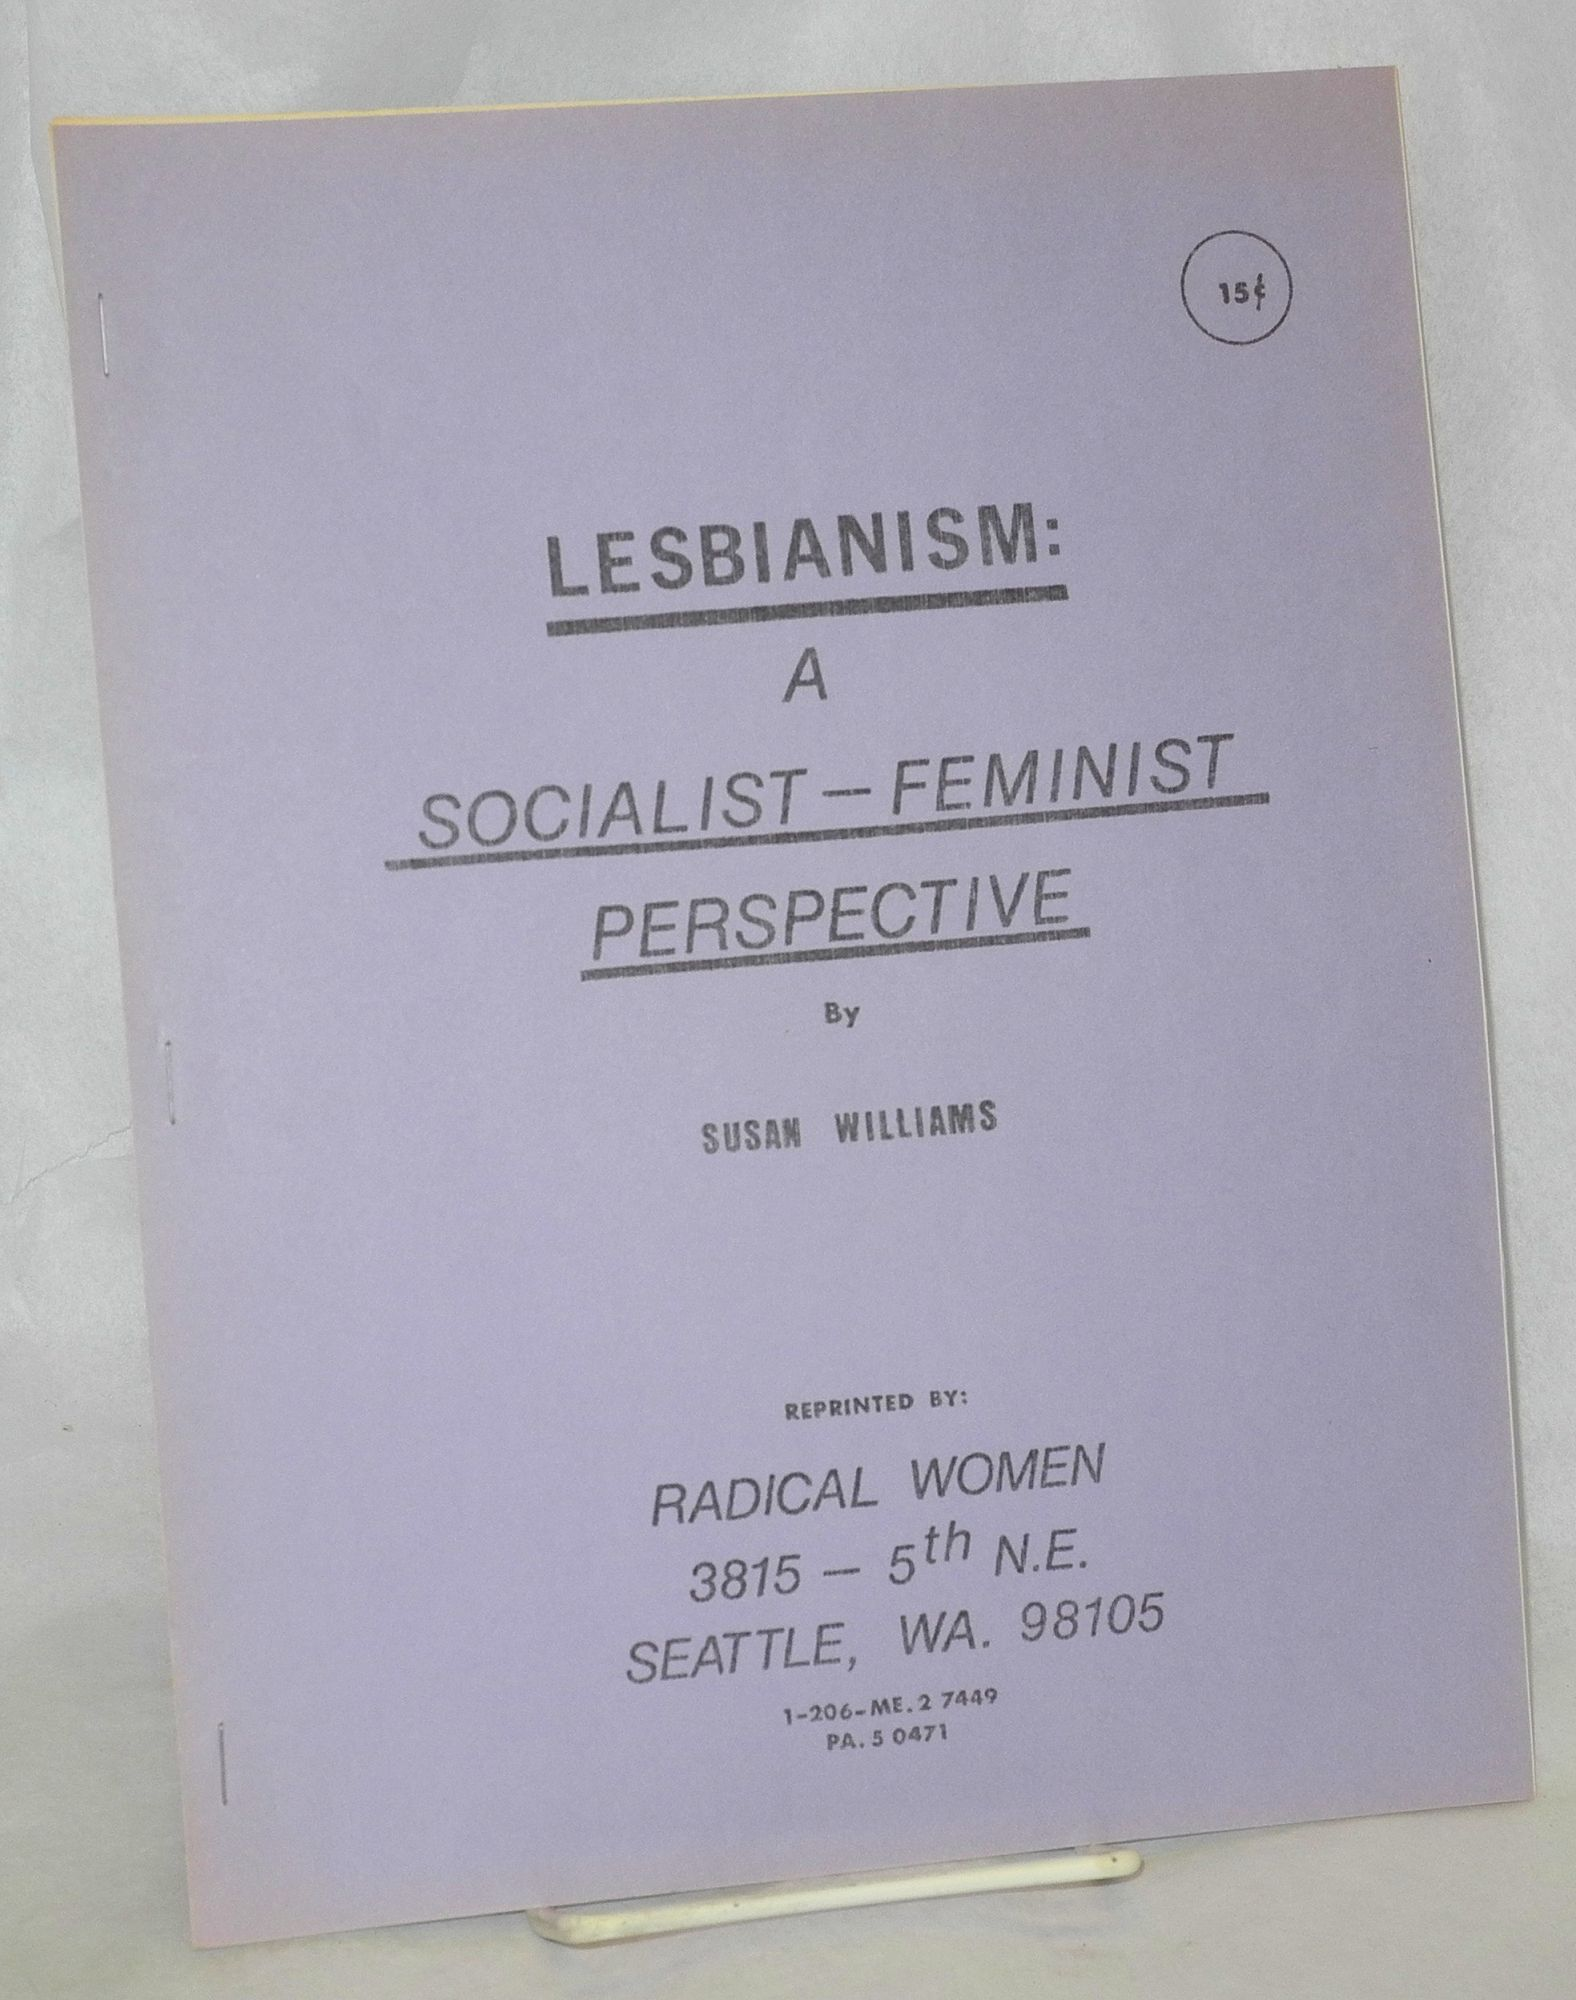 an analysis of feminism and the standpoint of lesbianism This article offers a reflexive analysis of critical feminism in the archival field   movement perspective appeared in the american archivist in 19737 as new  social history  the lesbian herstory archives (lha) is often cited as a  noteworthy.